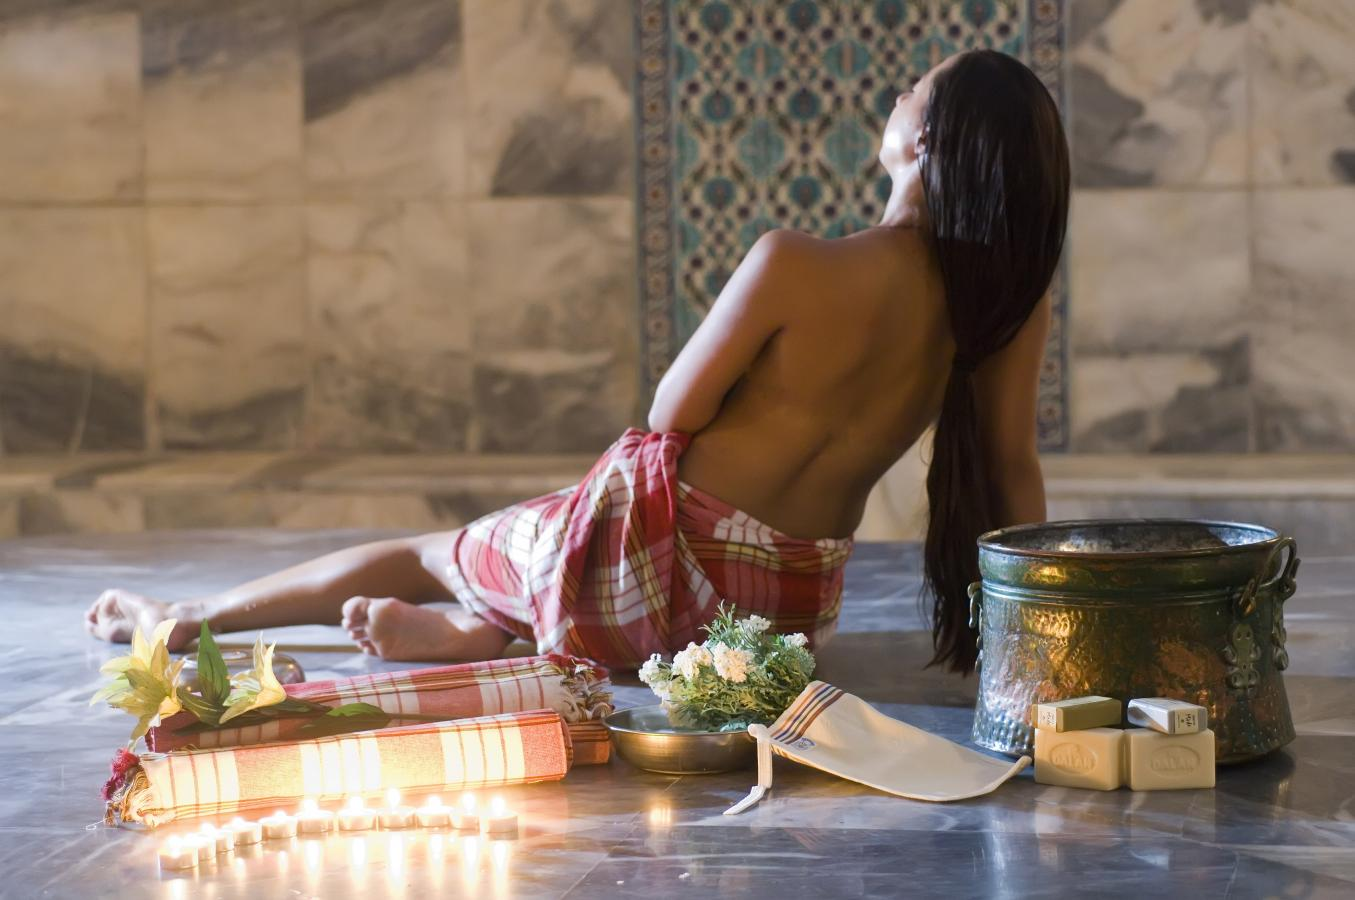 Refreshing and Relaxing massage at the traditional Turkish bath ...